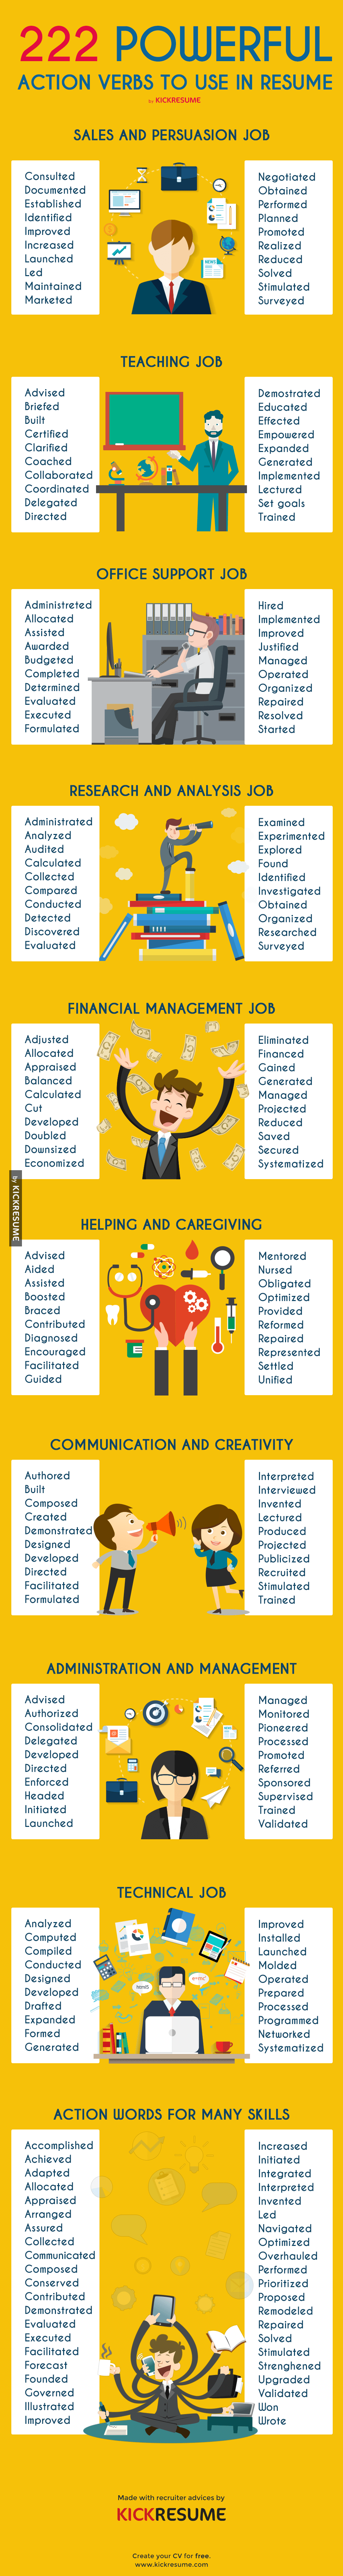 222 Powerful Actions Verbs to Use in Resume | Bullets | Pinterest ...